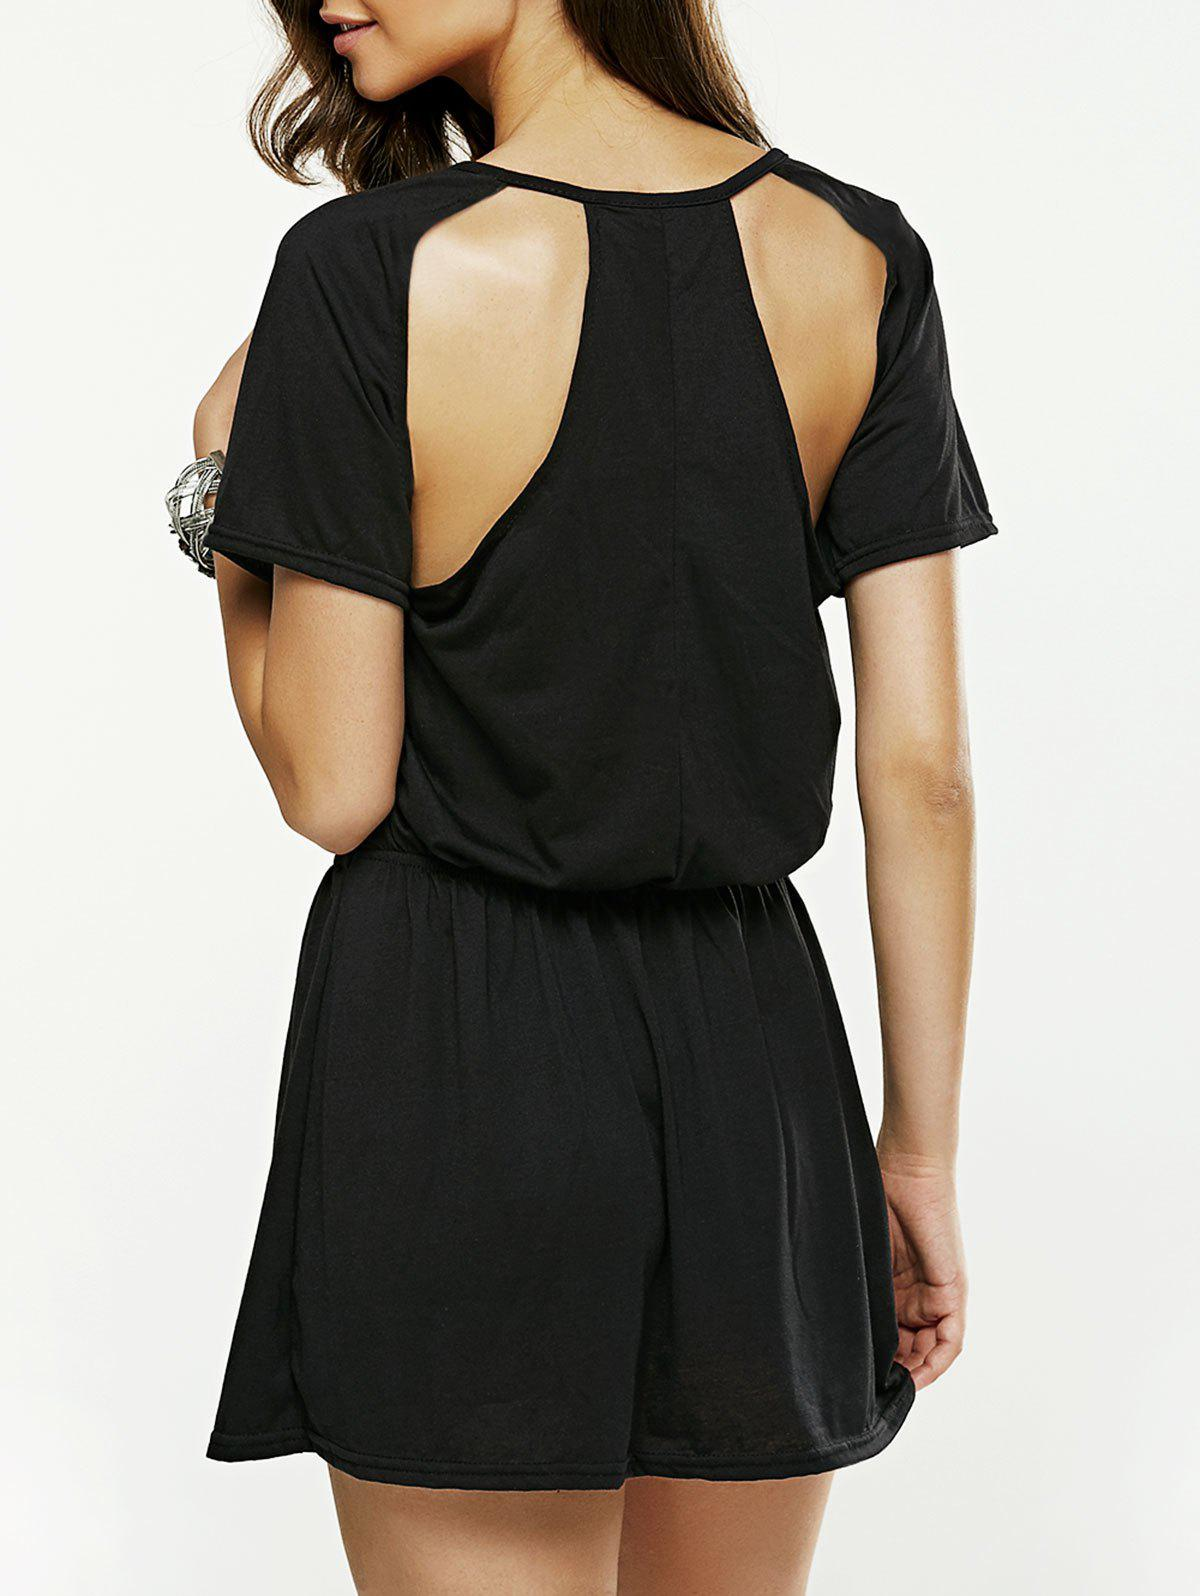 Hollow Out Backless Mini Dress - BLACK L